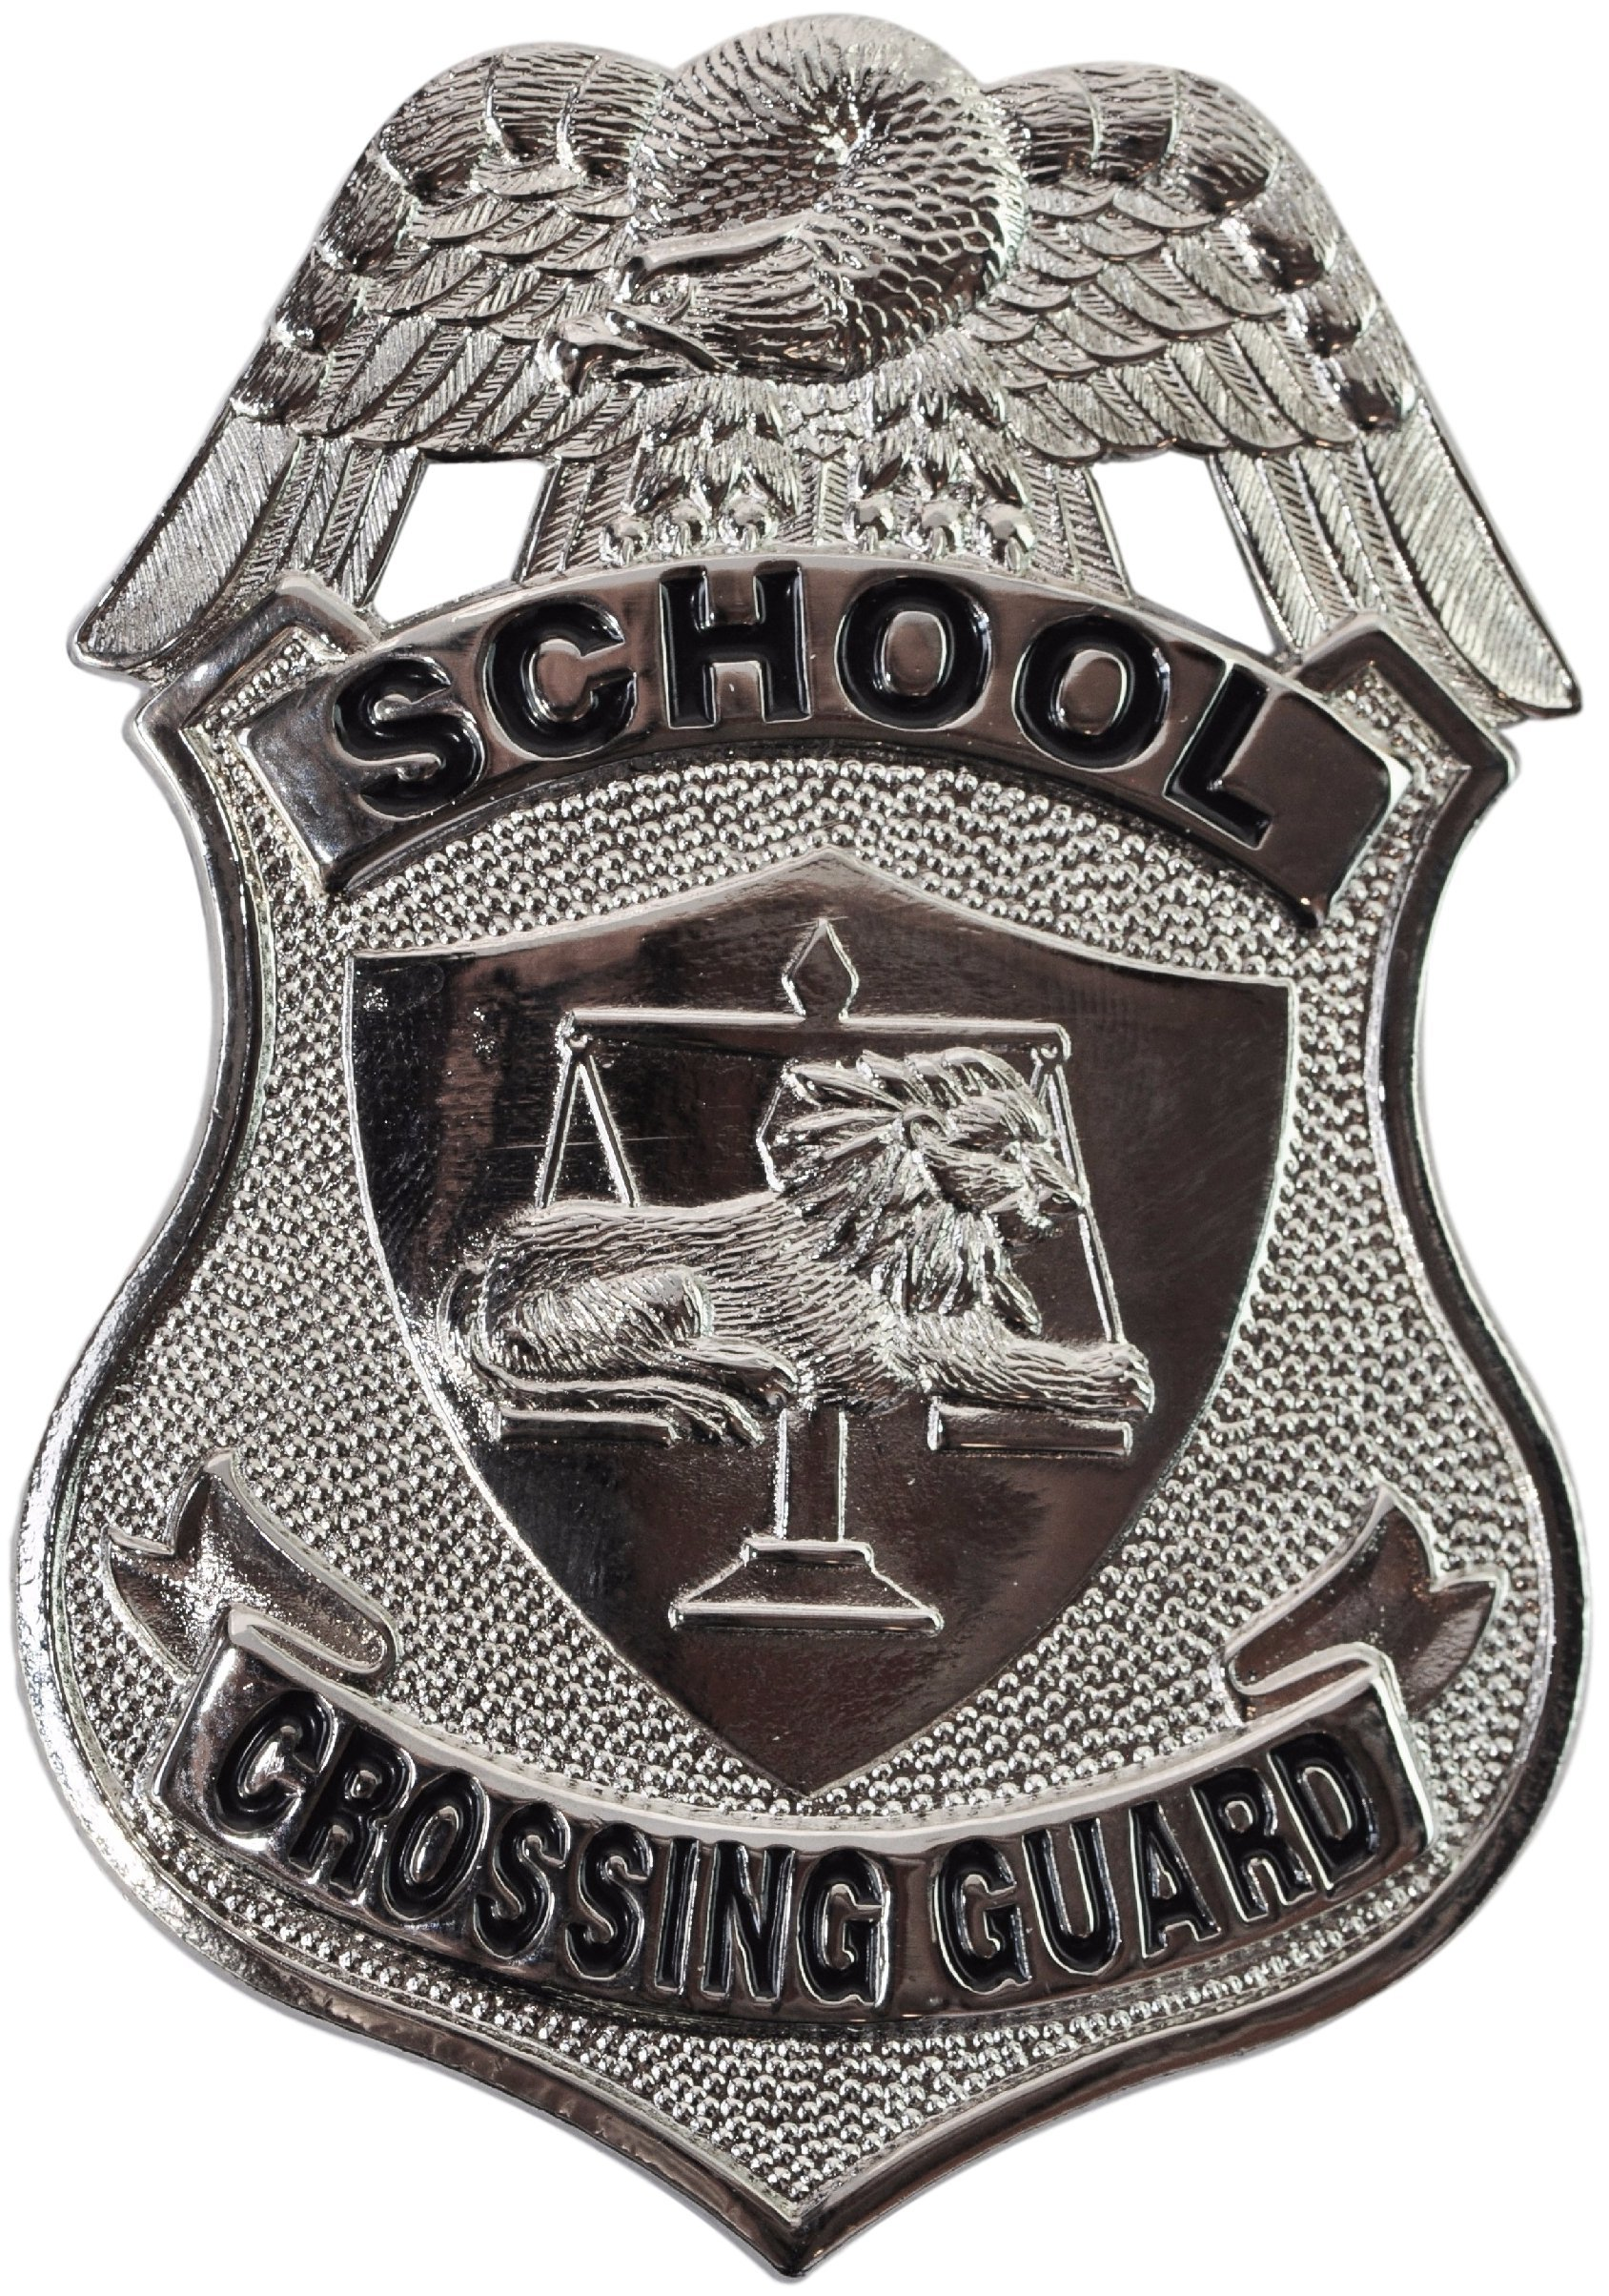 Tactical 365 Operation First Response School Crossing Guard Badge